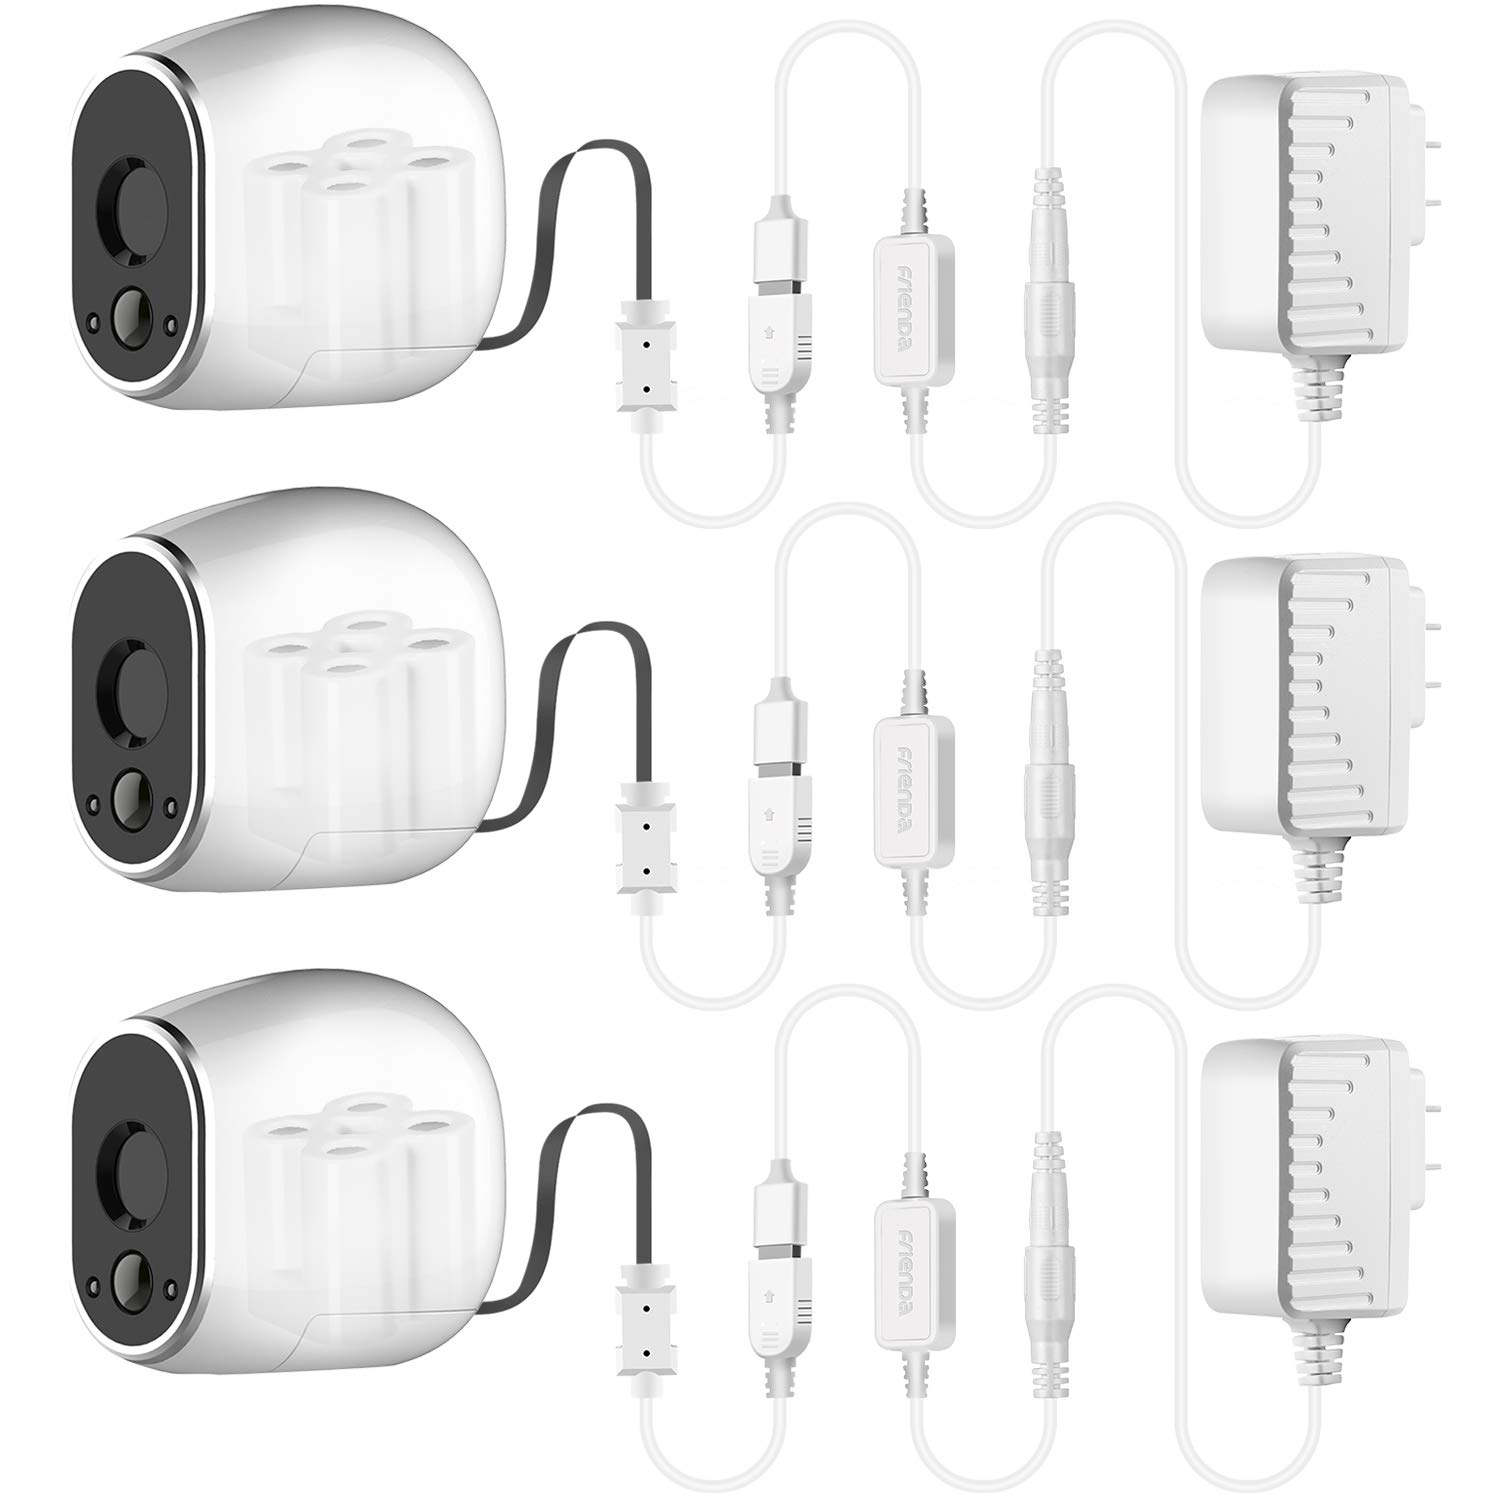 Frienda Adapter with 20 Feet/6 m Power Cable Compatible with Arlo (Replace CR123A), Weatherproof Outdoor to Continuously Operate Arlo, Not Compatible with Alro Pro and Arlo 2 (3 Pack, White)